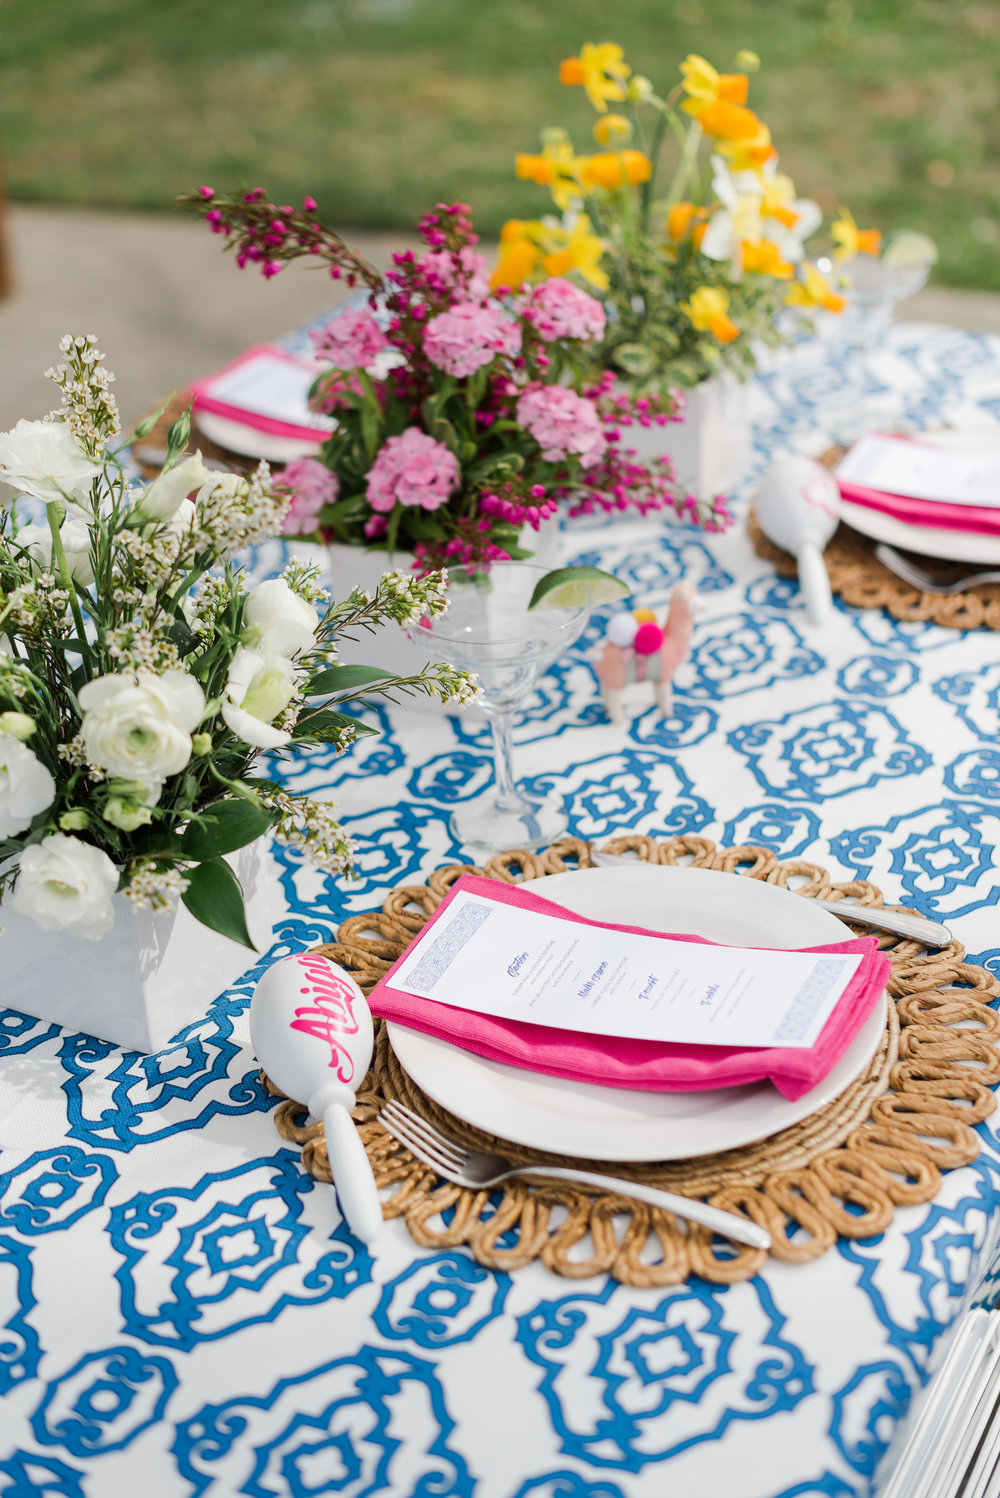 Fiesta-Party-Inspiration-by-Event-Prep-Cassandra-Clair-Photograpy-Amanda-Collins-30.jpg